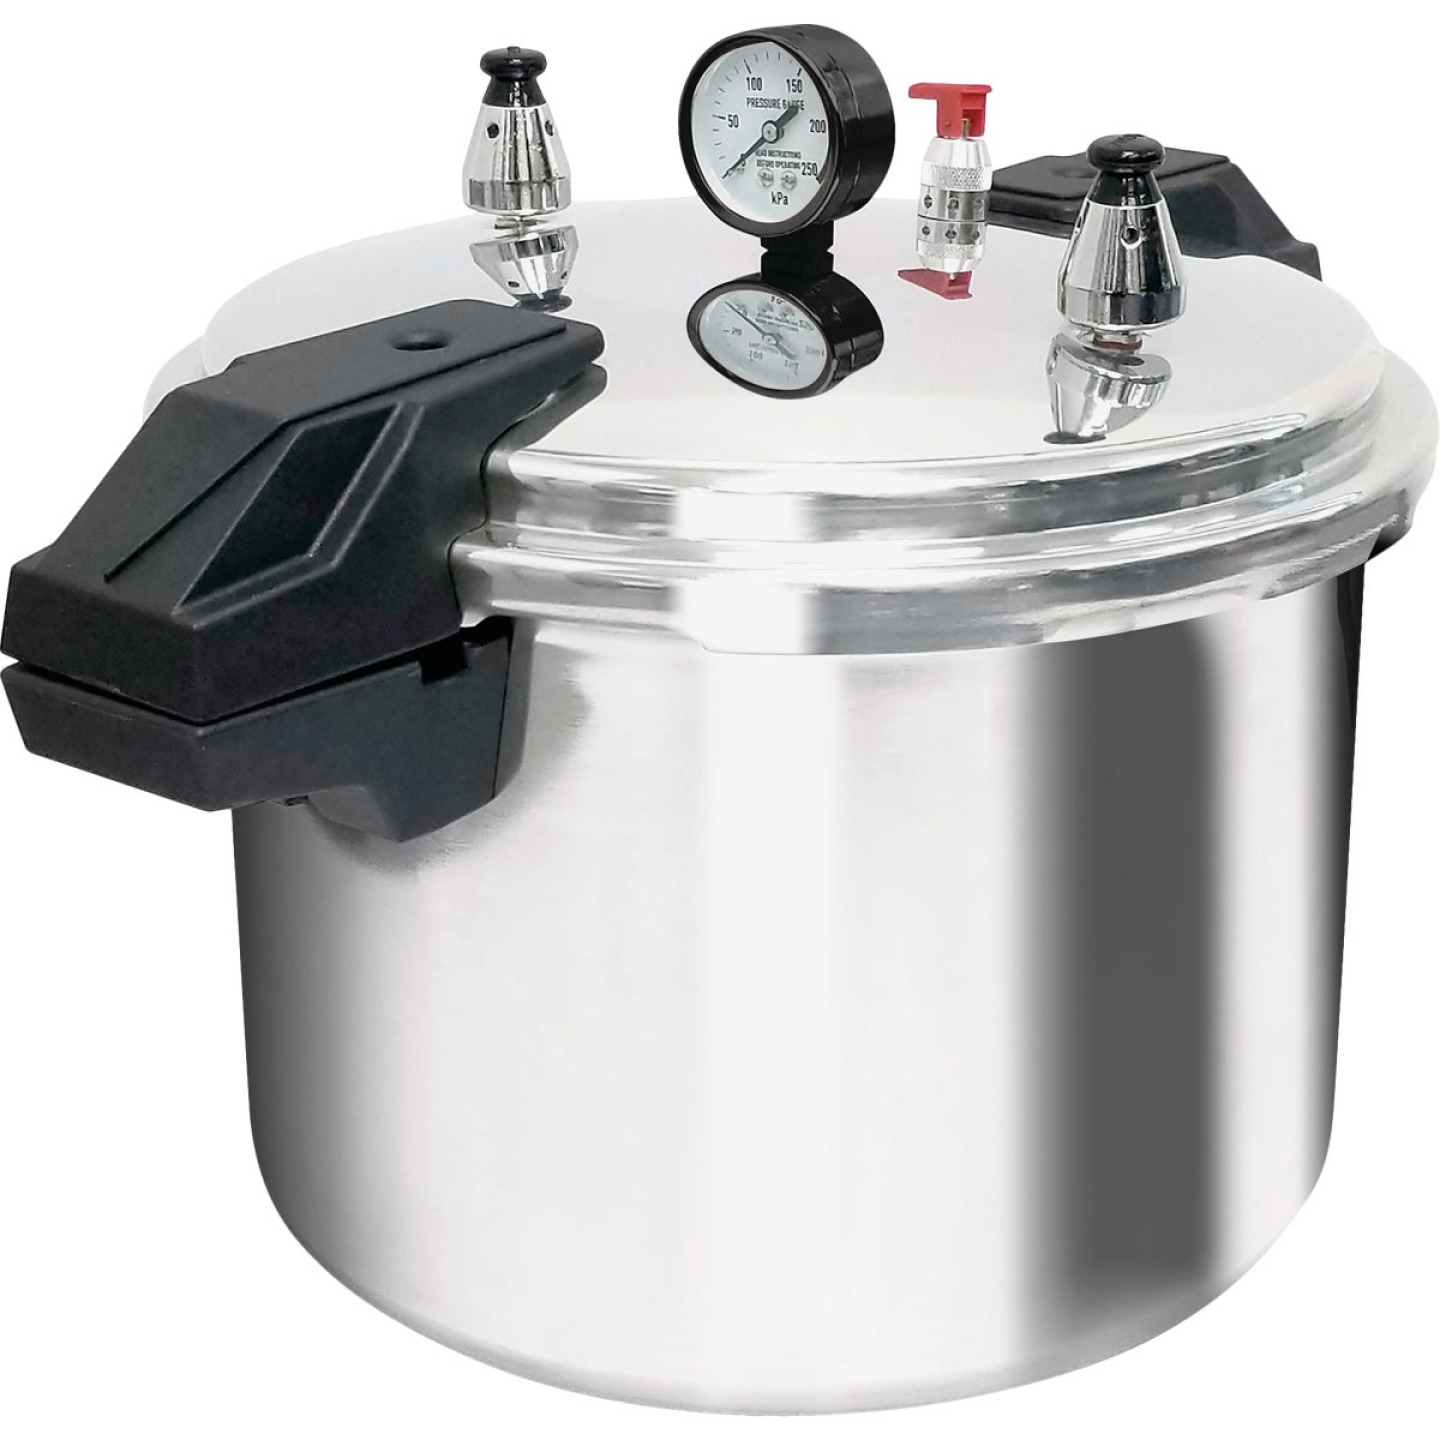 Gourmet Trends 23 Qt. Pressure Canner & Cooker Image 1